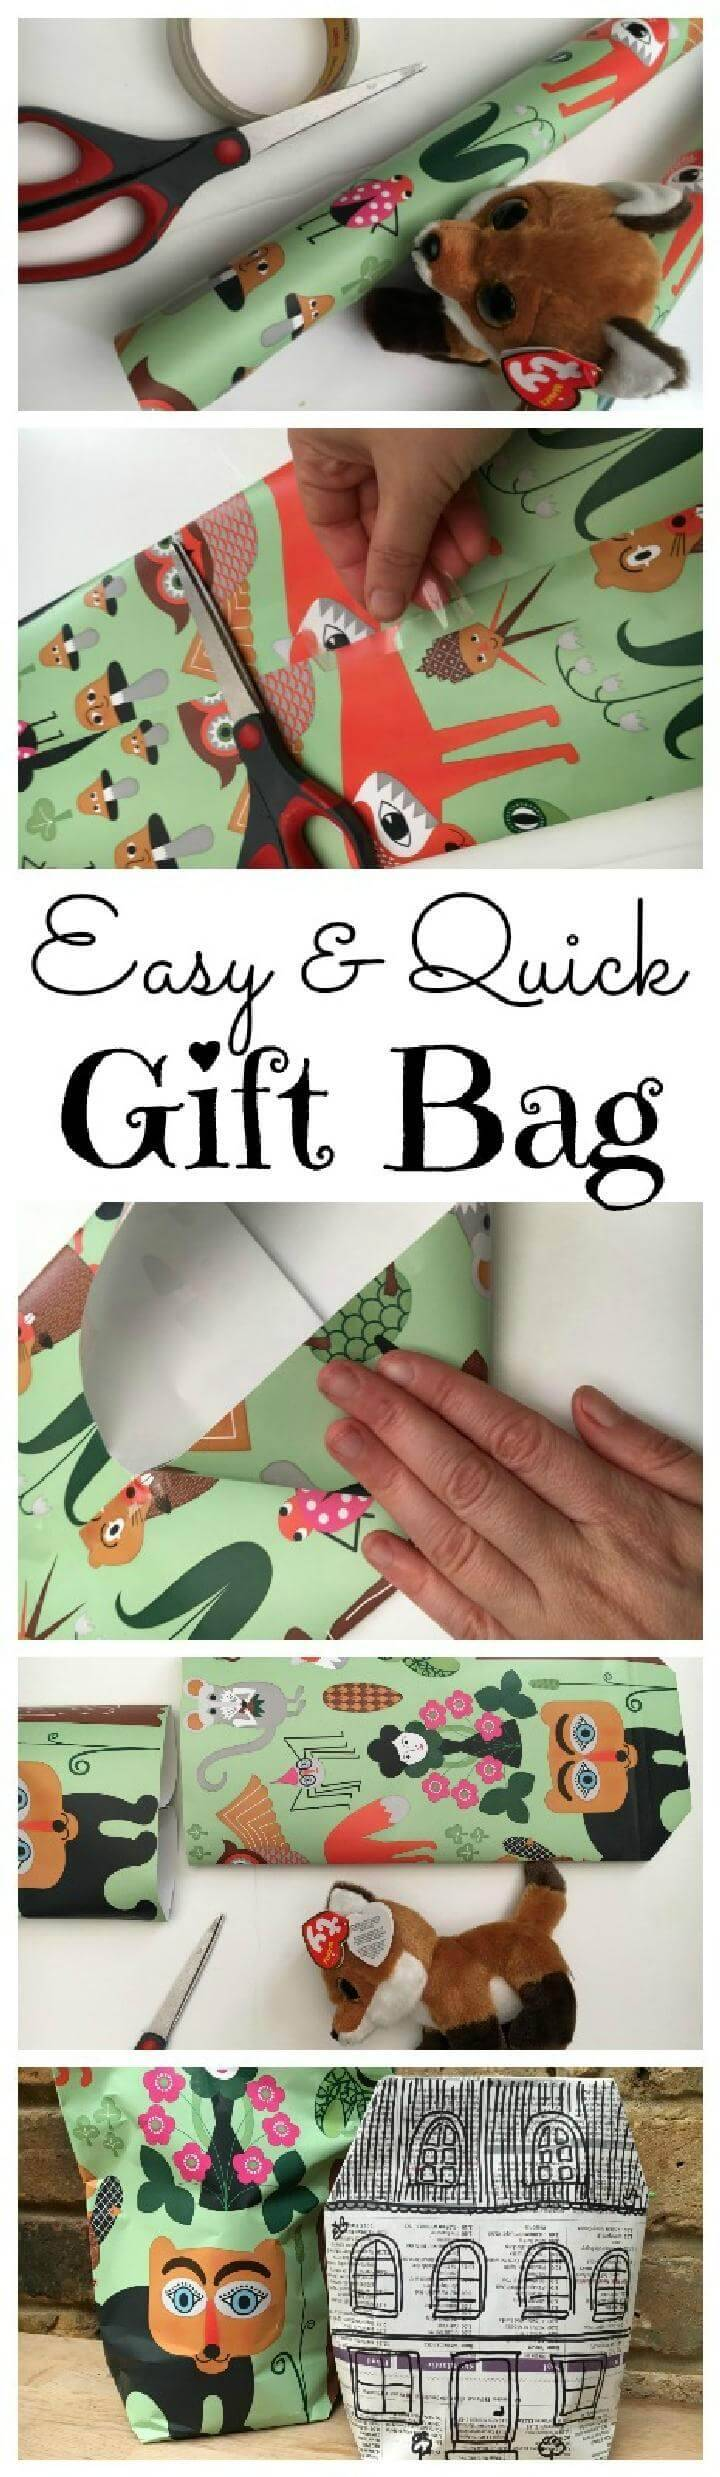 DIY Timeless Newspaper Gift Bag